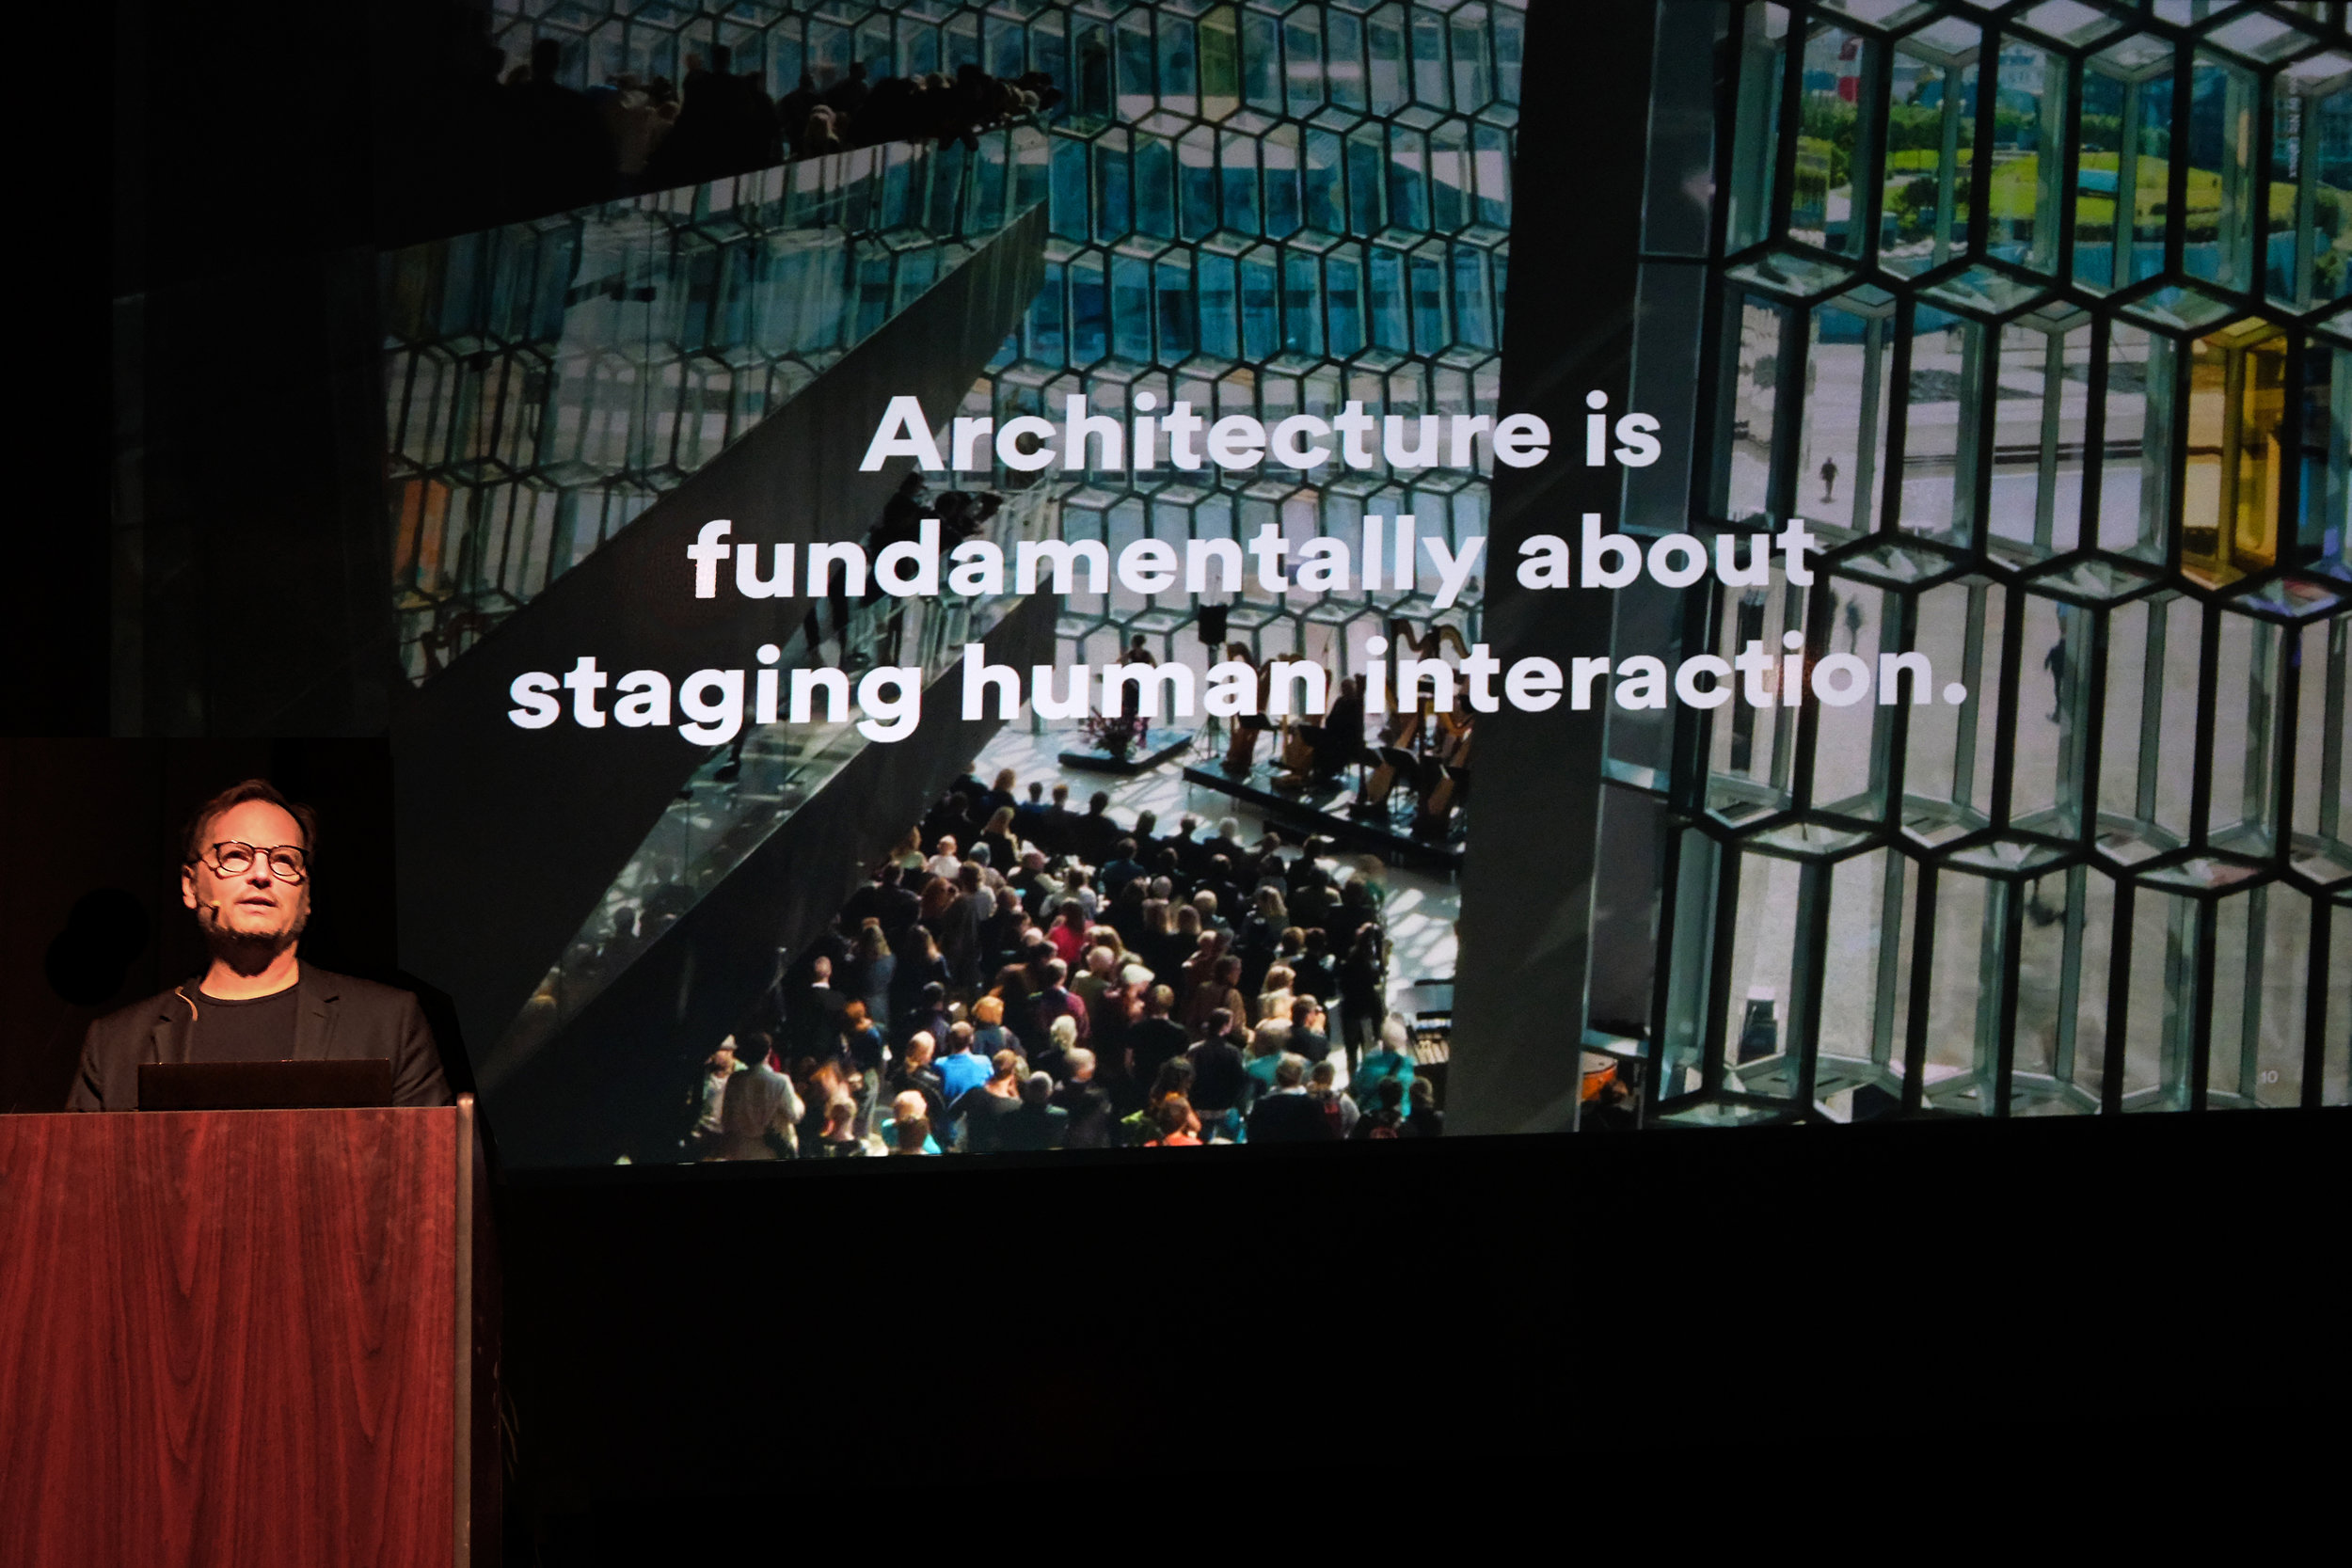 The School of Architecture welcomed Louis Becker of Henning Larsen Architecture on Monday 25 March for the 2019 Spring Lecture Series. The Copenhagen-based practice uses scientific research tools and project-based design research to create sustainable places that facilitate human interaction. Image: Michael Powell, Carnegie Mellon School of Architecture